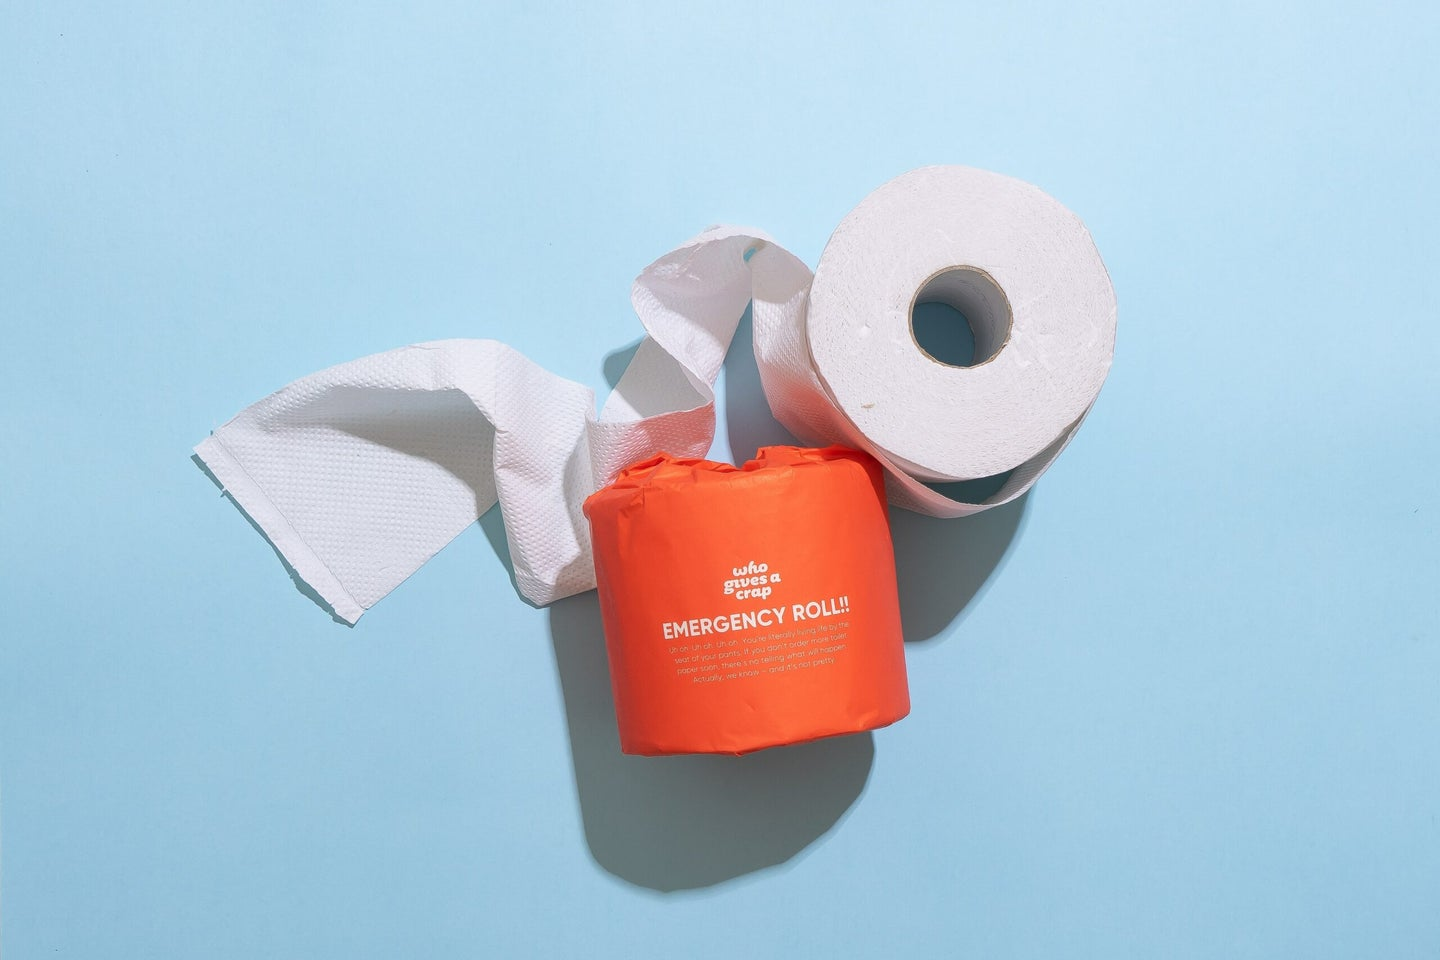 A roll of toilet paper labeled as